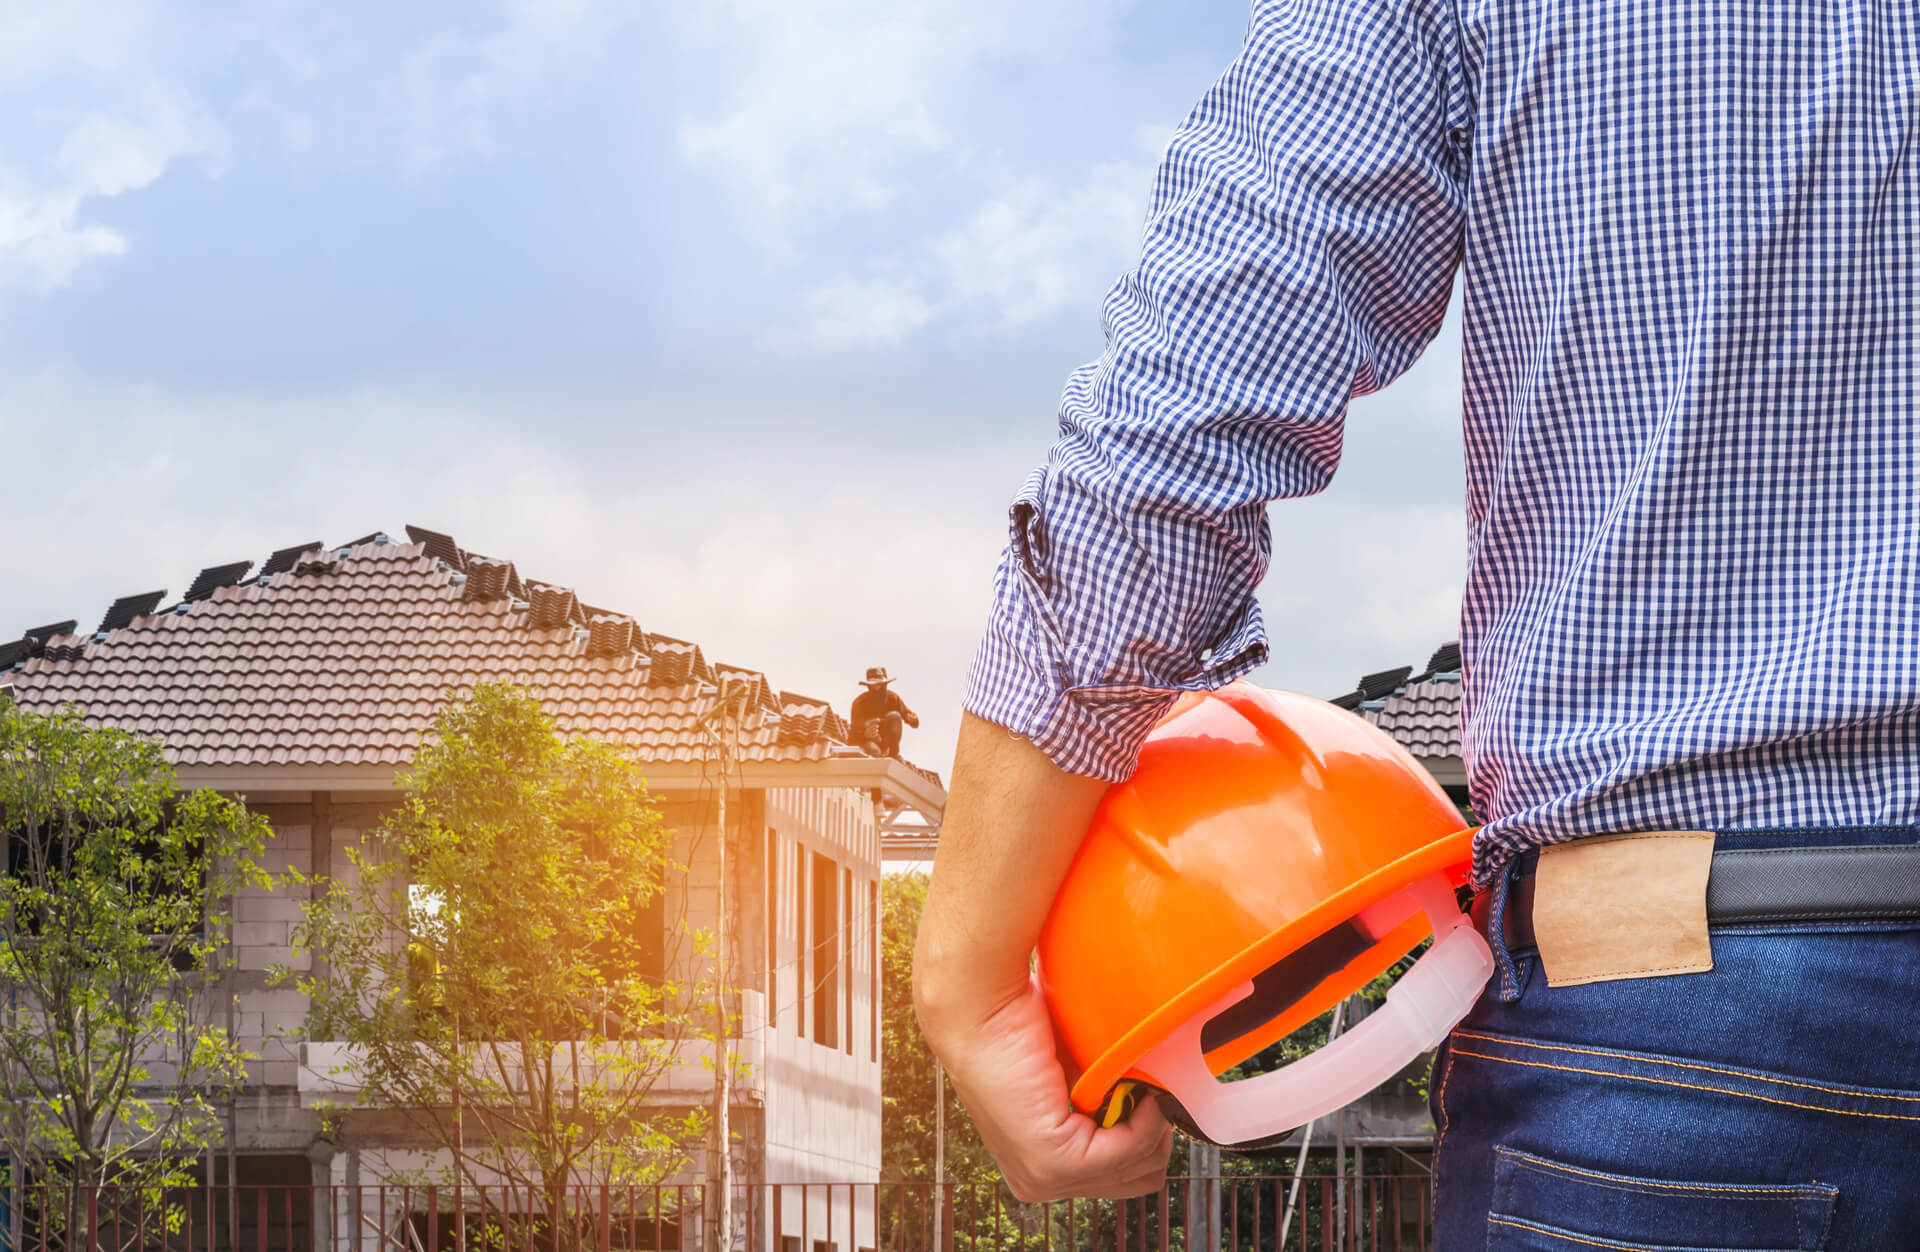 Great Plano Roofing Contractor Looking At Homes With New Roofs